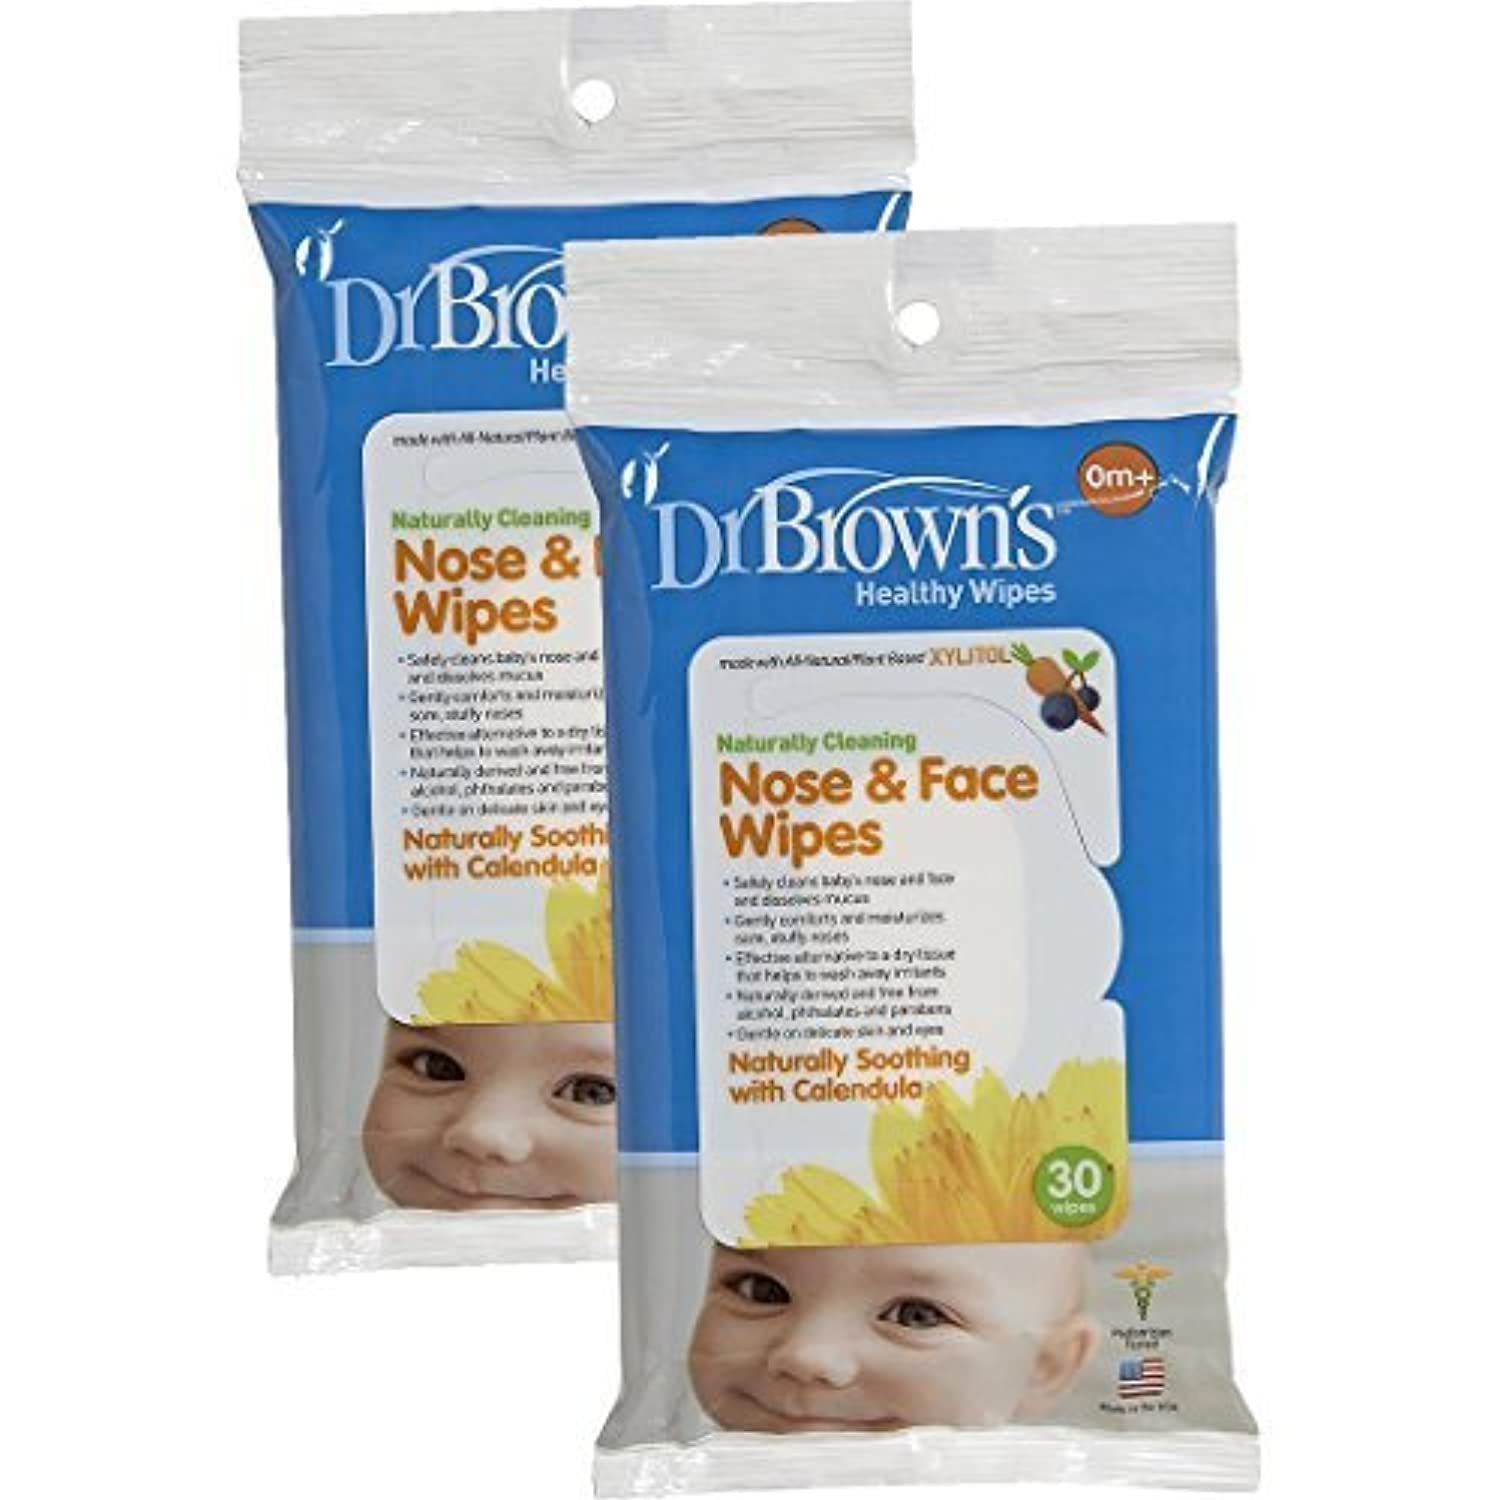 Dr. Brown's Nose and Face Wipes - 30 Pk (Set of Two) by Dr. Brown's [並行輸入品]